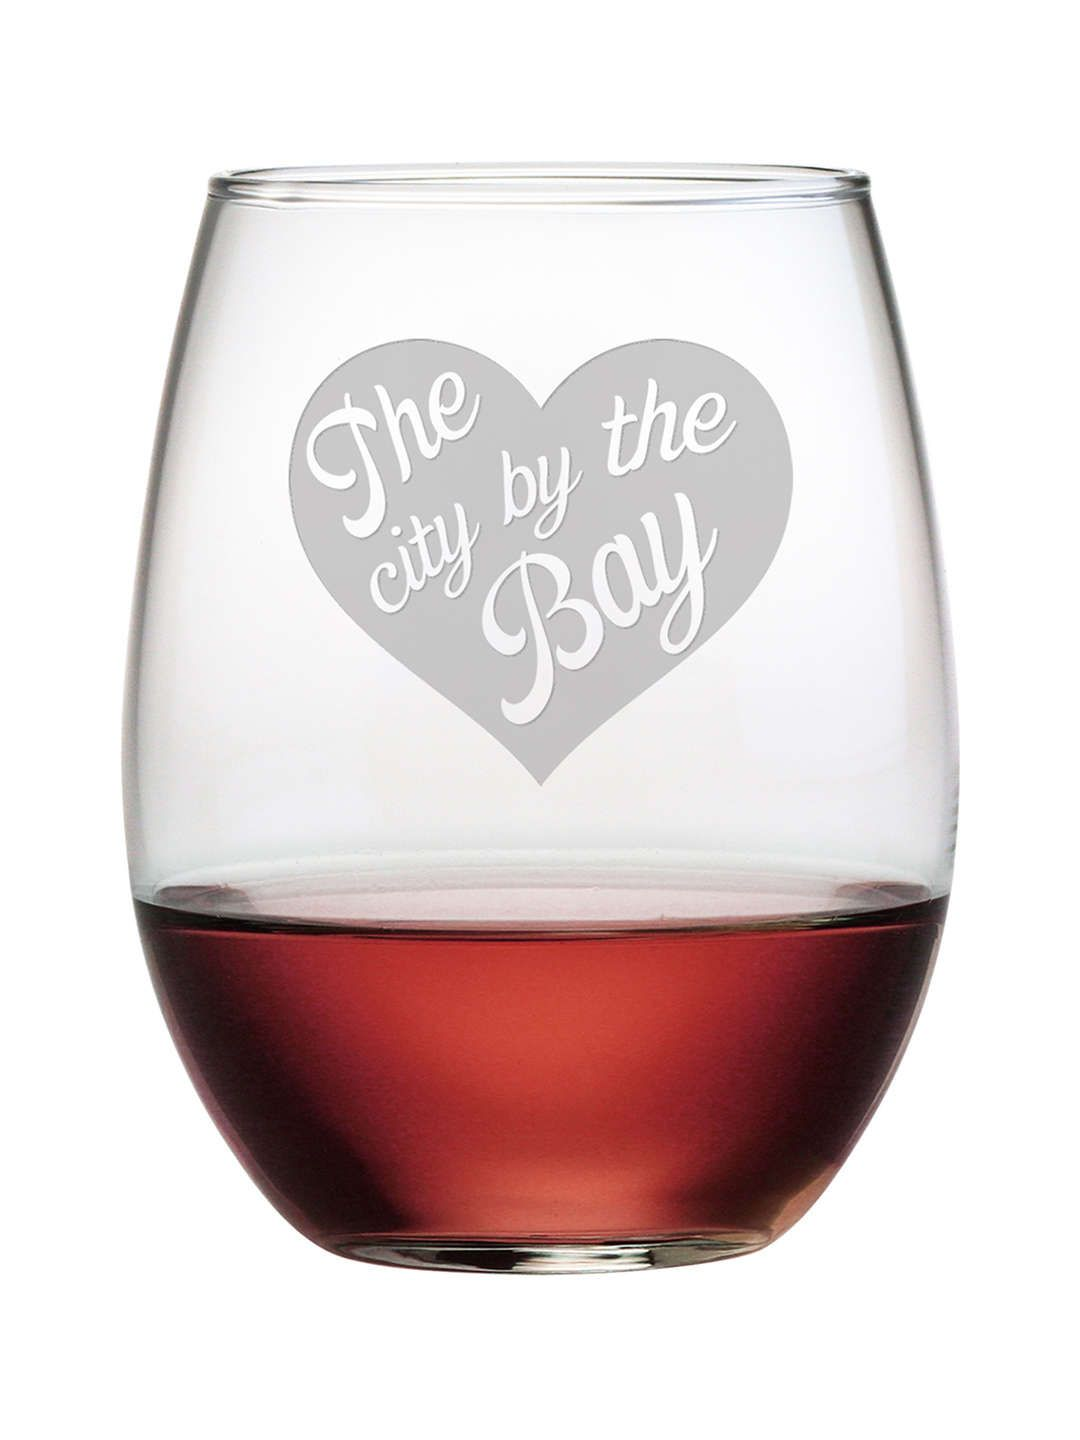 San Francisco The City By The Bay Stemless Wine Glasses Susquehanna Glass Co Stemless Wine Glasses Wine Glasses Wine